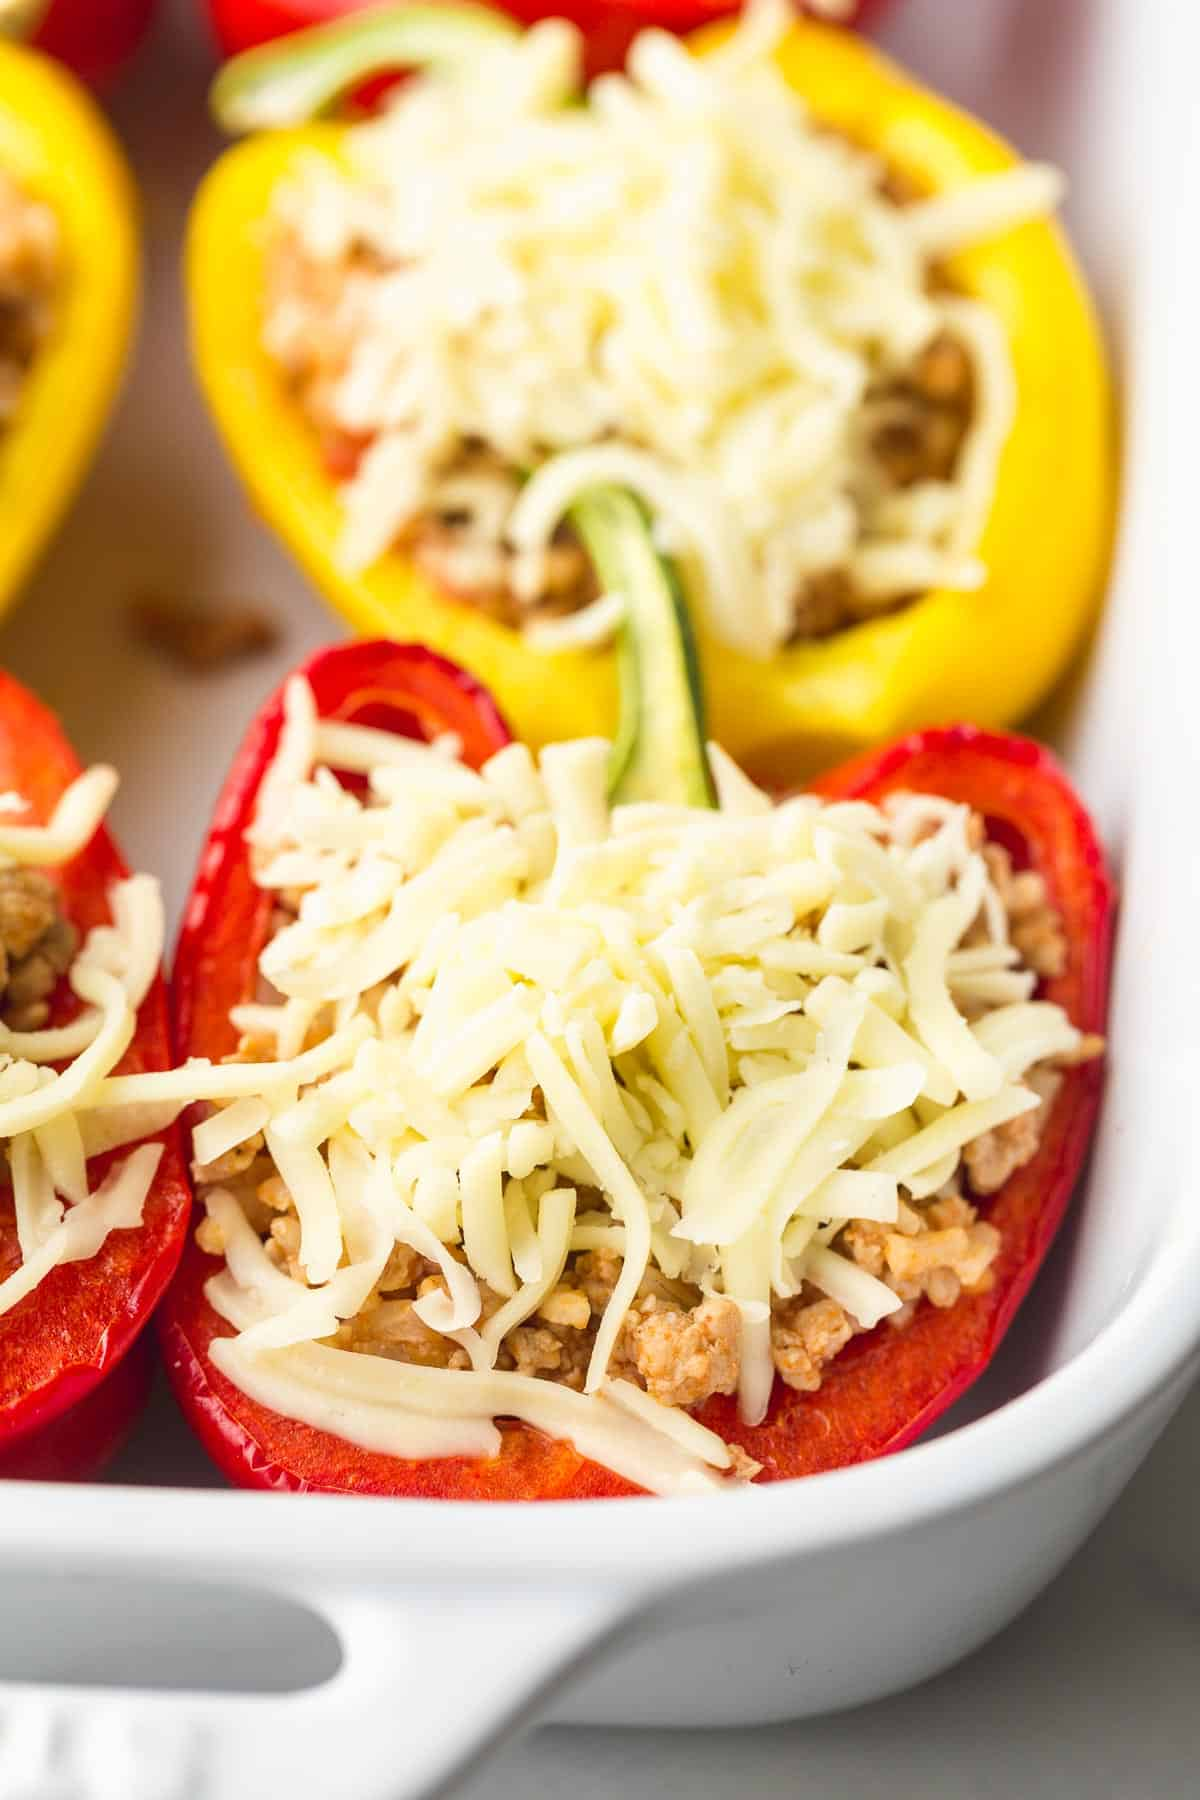 Topping the mexican stuffed peppers with cheese